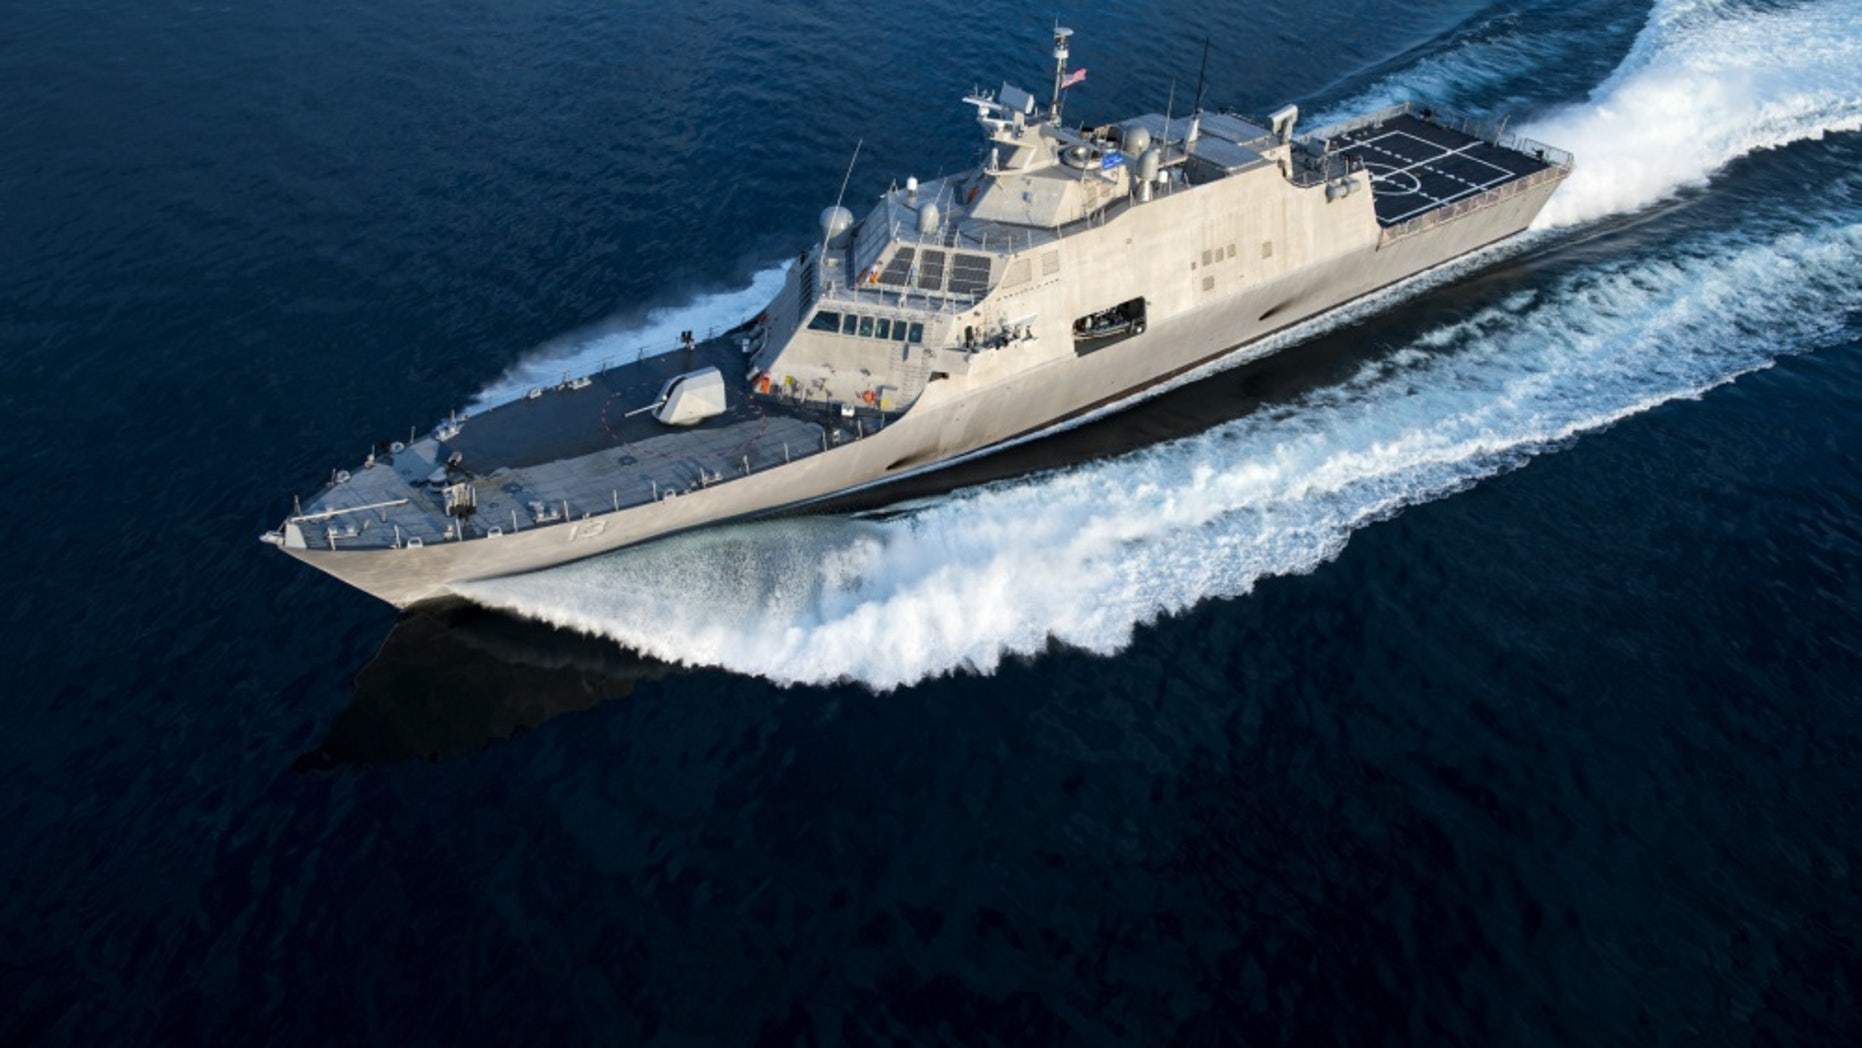 File photo - The future littoral combat ship USS Wichita (LCS 13) conducts acceptance trials on Lake Michigan. The trials are the last significant milestone before a ship is delivered to the Navy. (U.S. Navy photo courtesy of Lockheed Martin/Released)